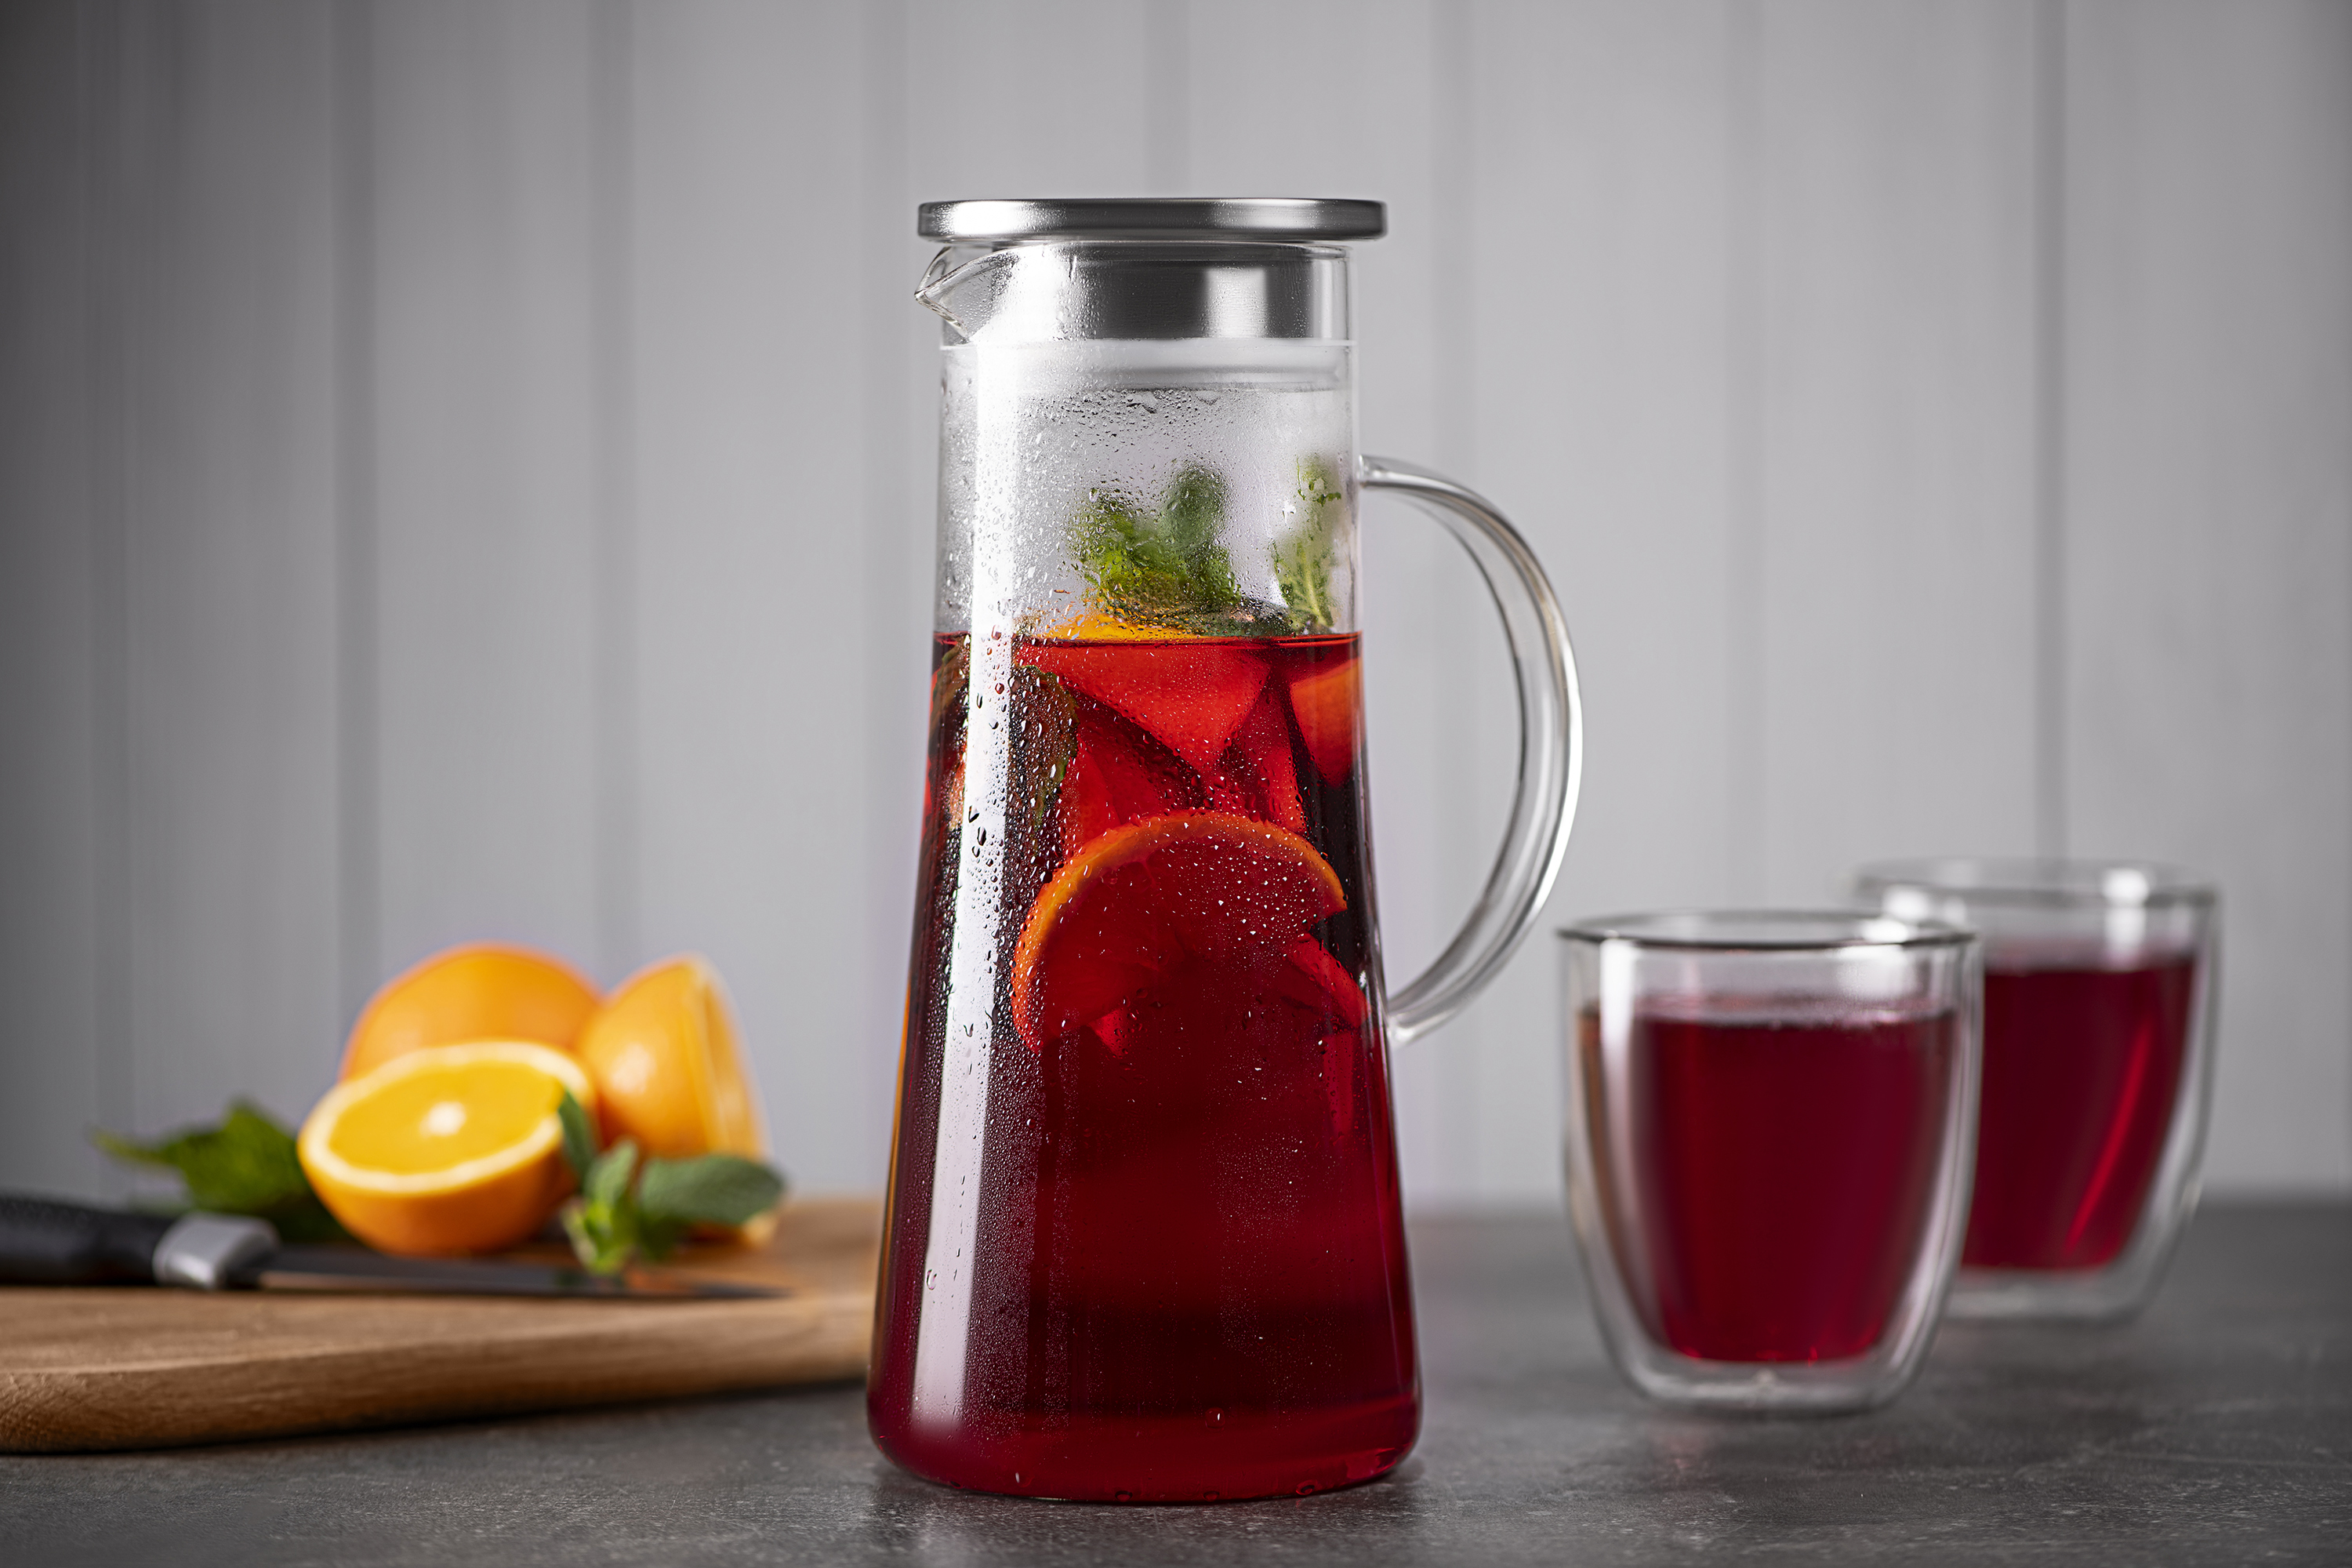 Ardesto glass jugs for your favorite drinks